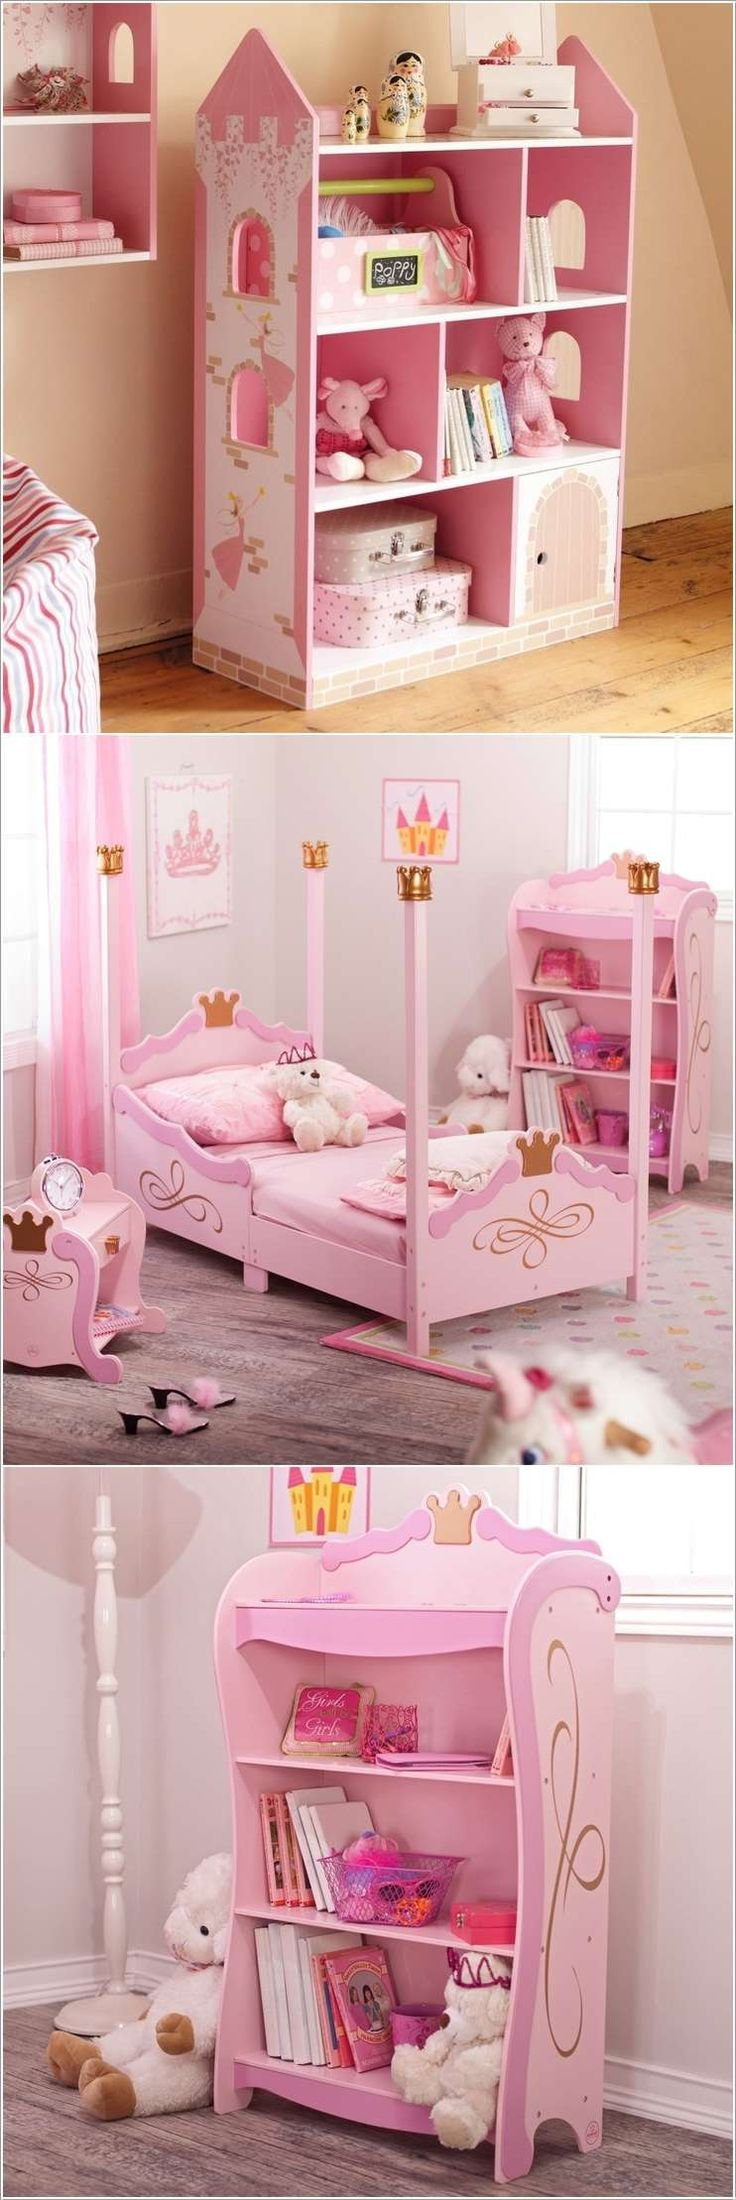 best 25+ princess room ideas for girls ideas on pinterest | girls